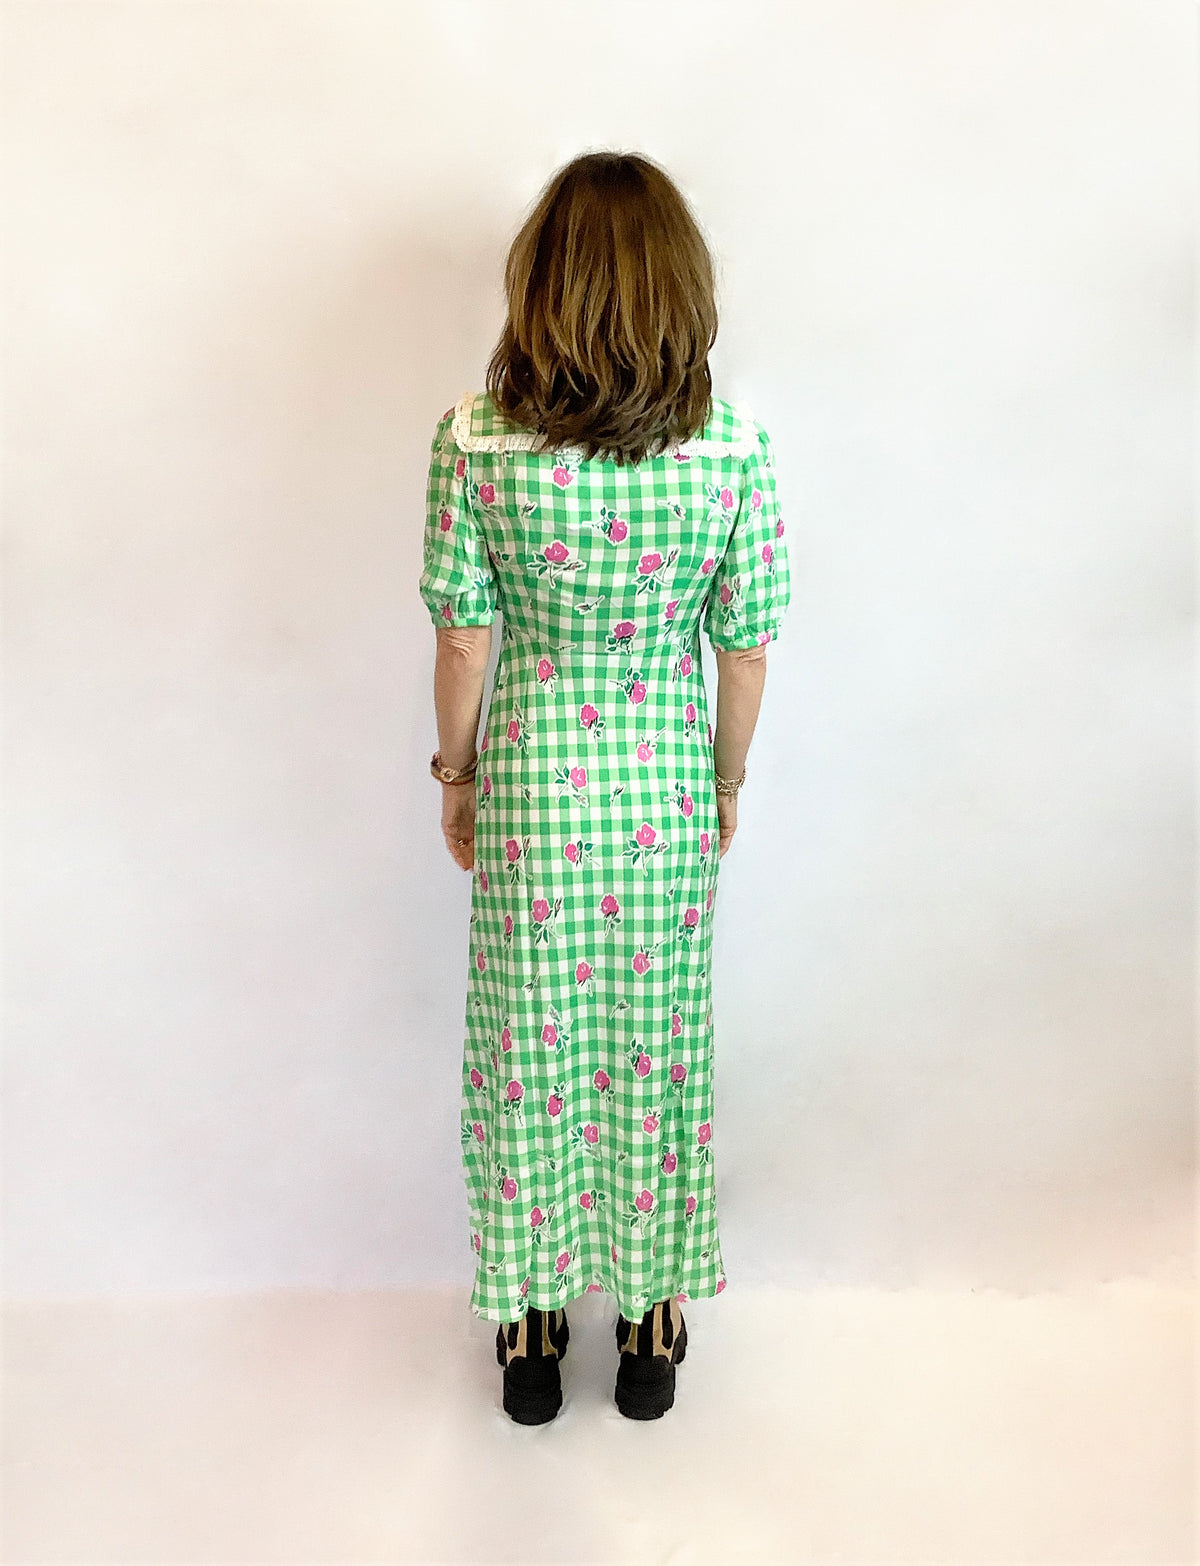 RIXO Gwen Midi Dress in Gingham Rose Green